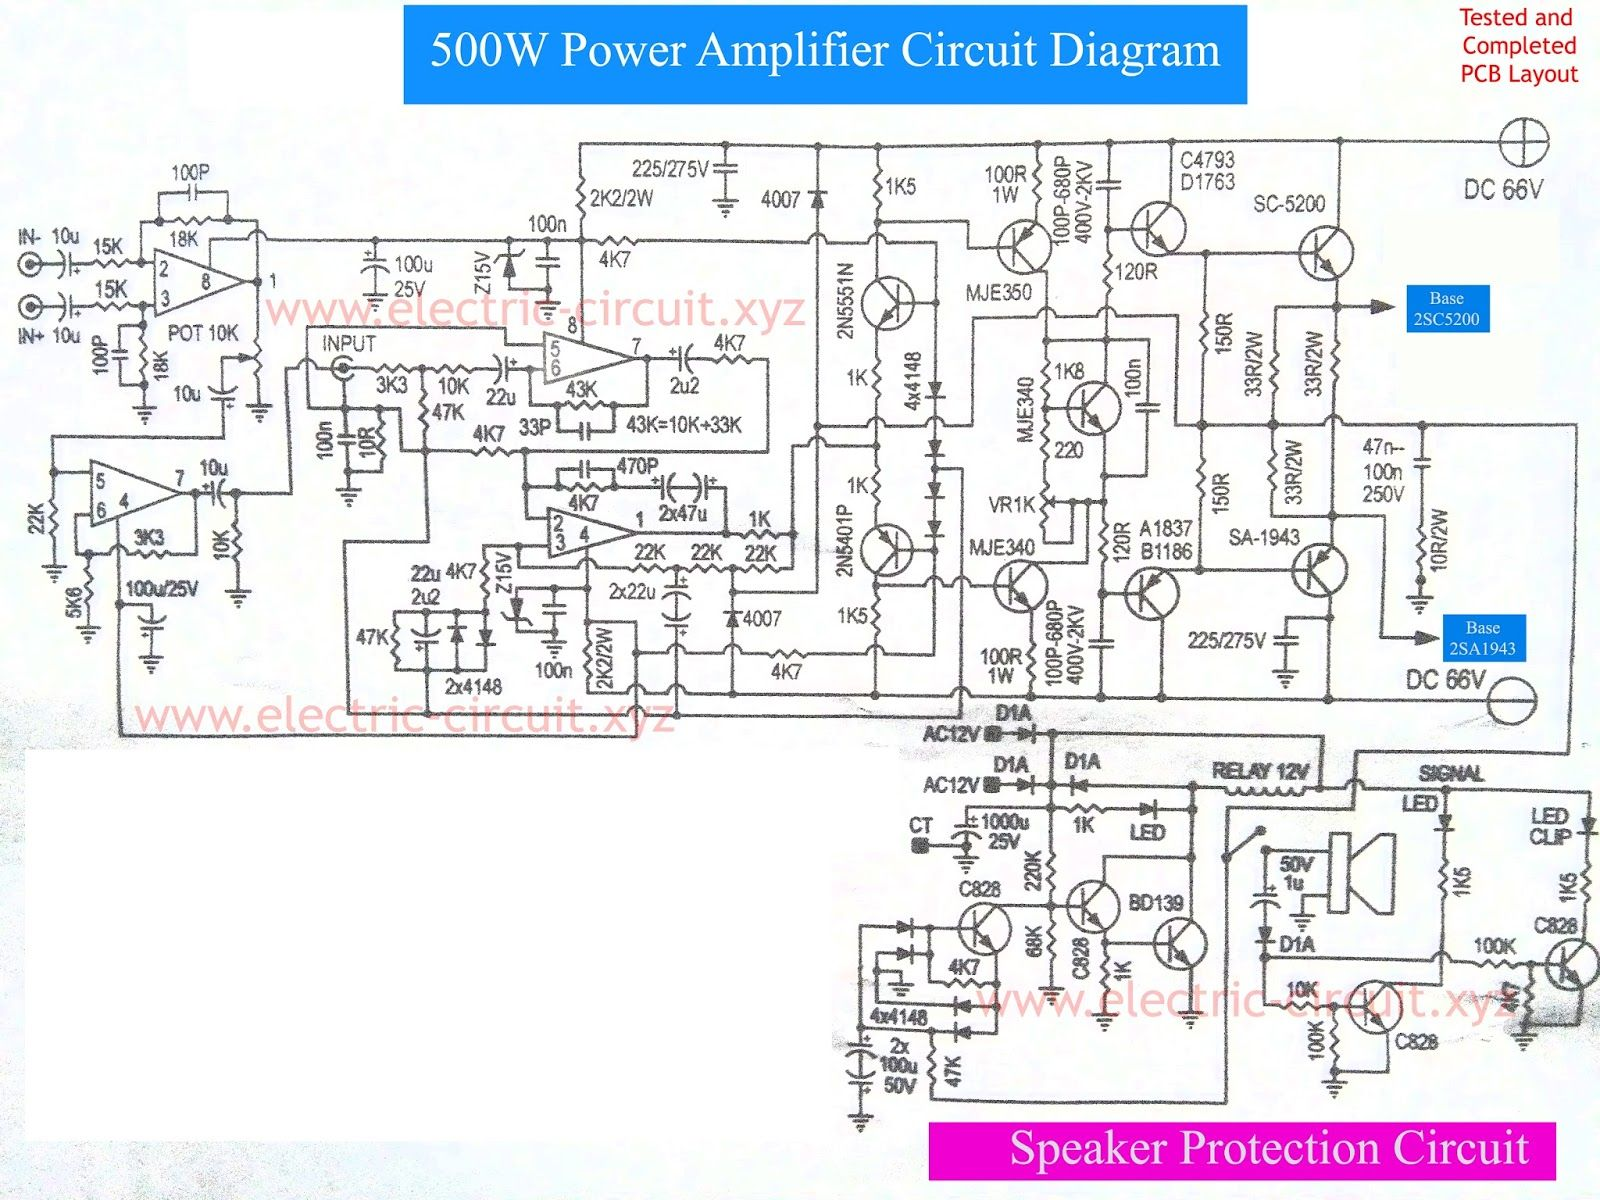 hight resolution of power amplifier 500w with speaker protection circuit diagram